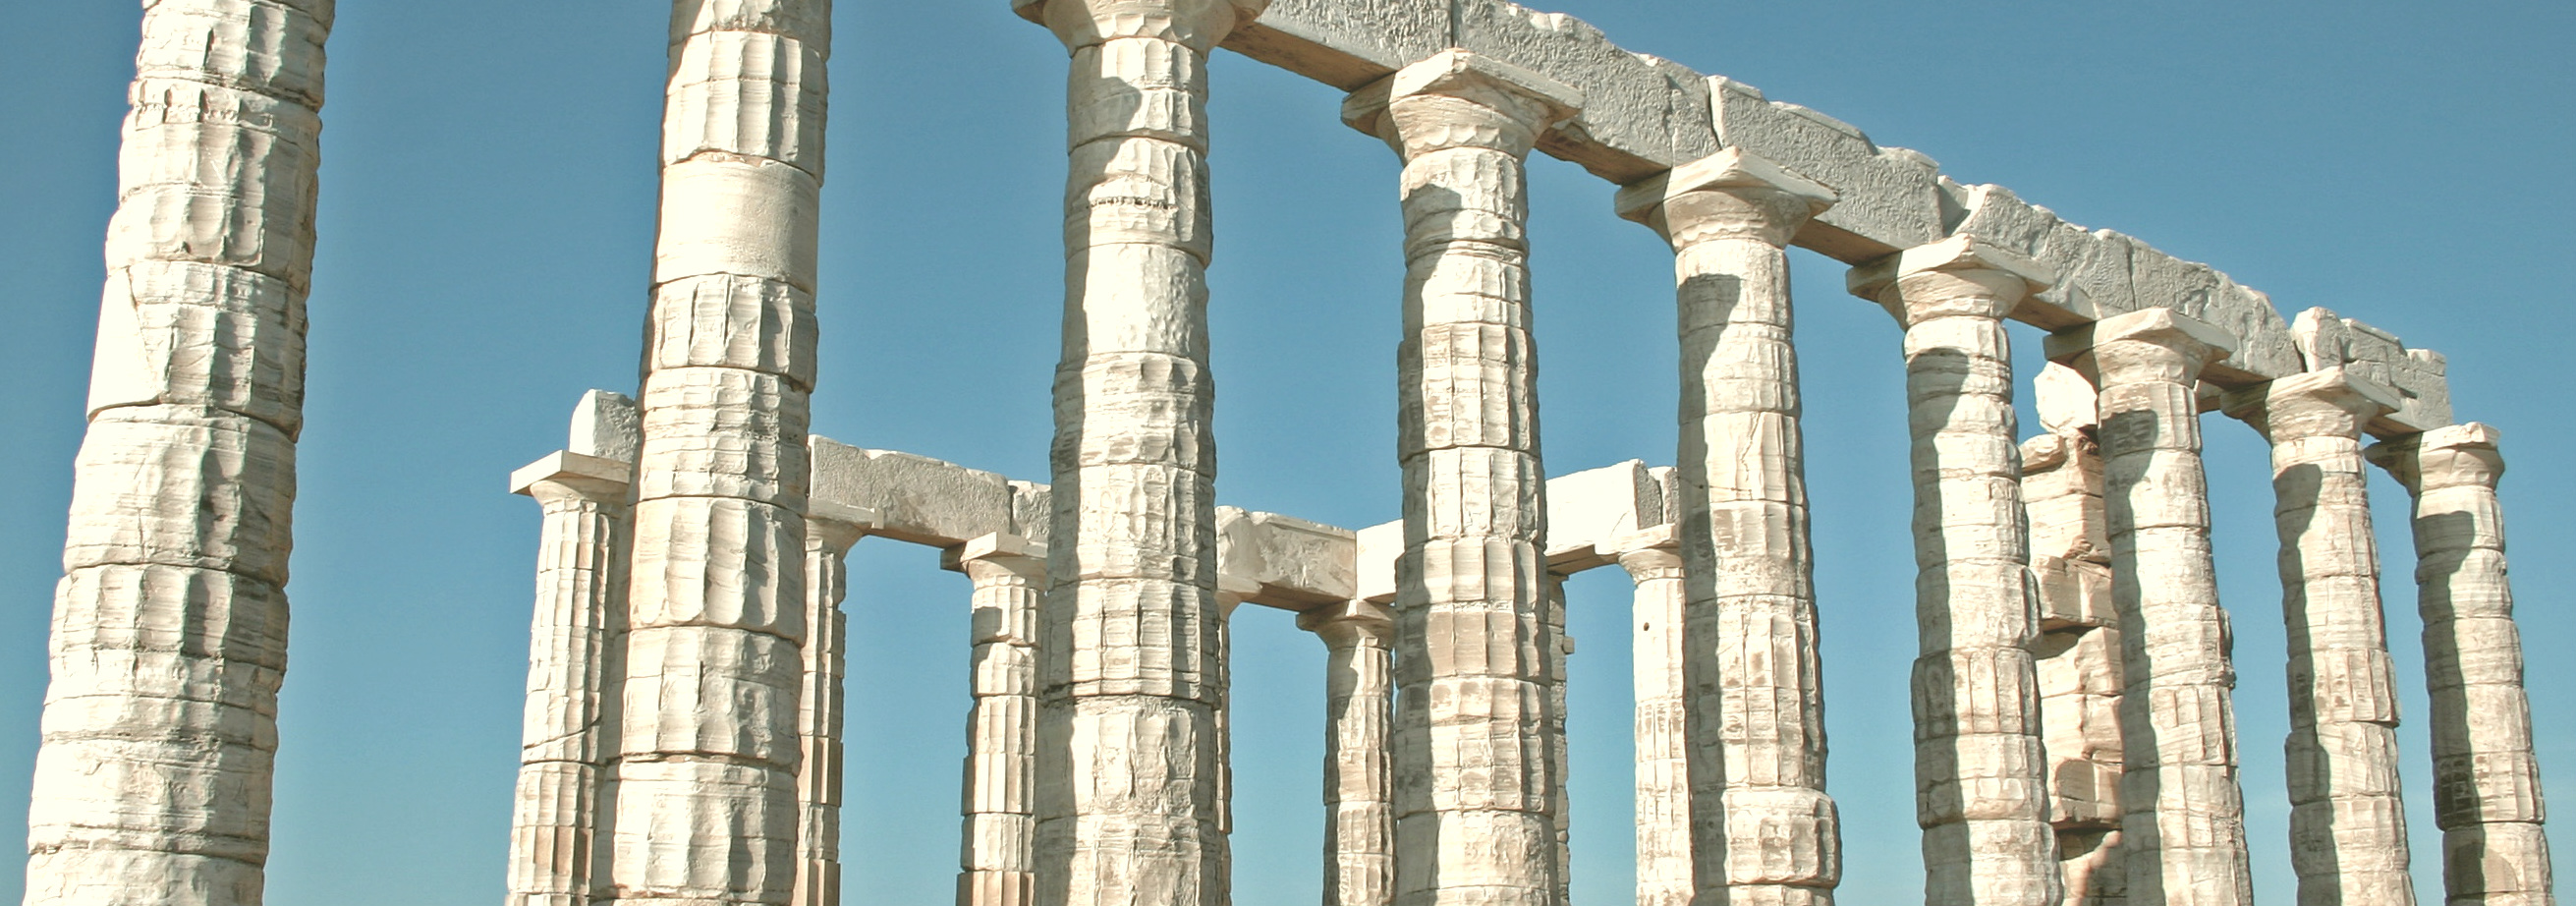 these are actually ruins of poseidon's temple in greece. joke's on you.